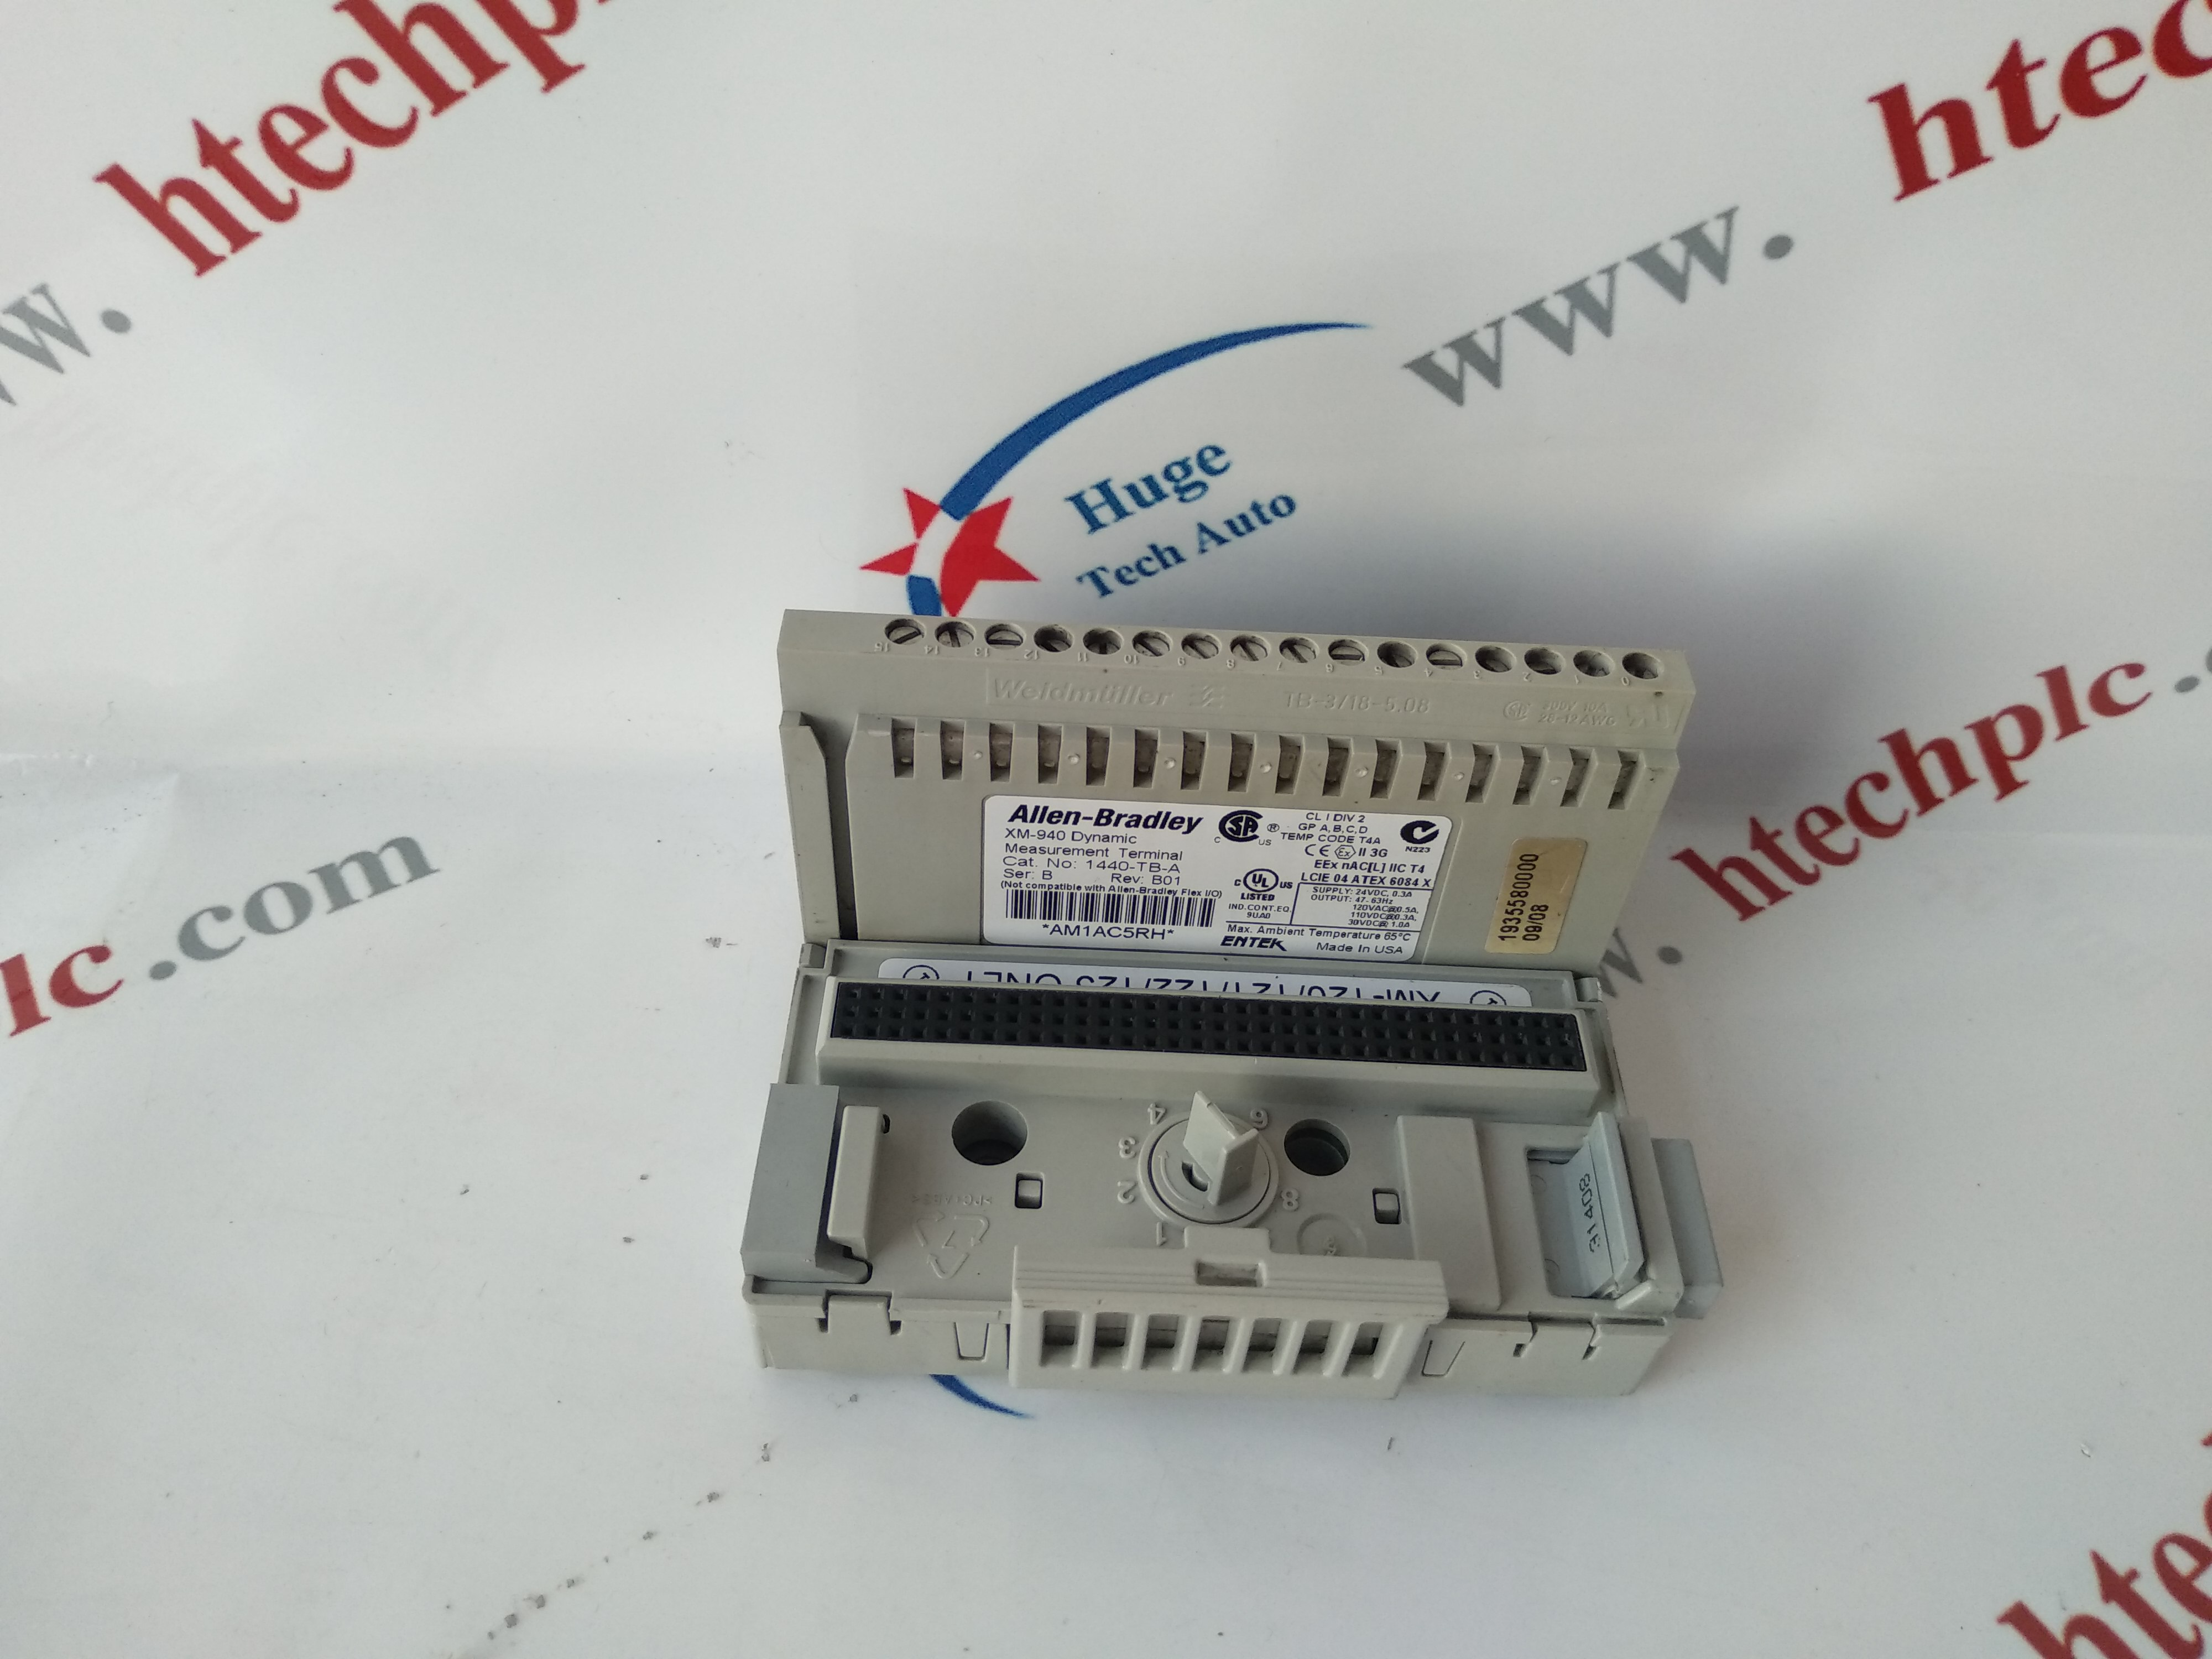 Allen Bradley 1756-OB16E brand new PLC DCS TSI system spare parts in stock